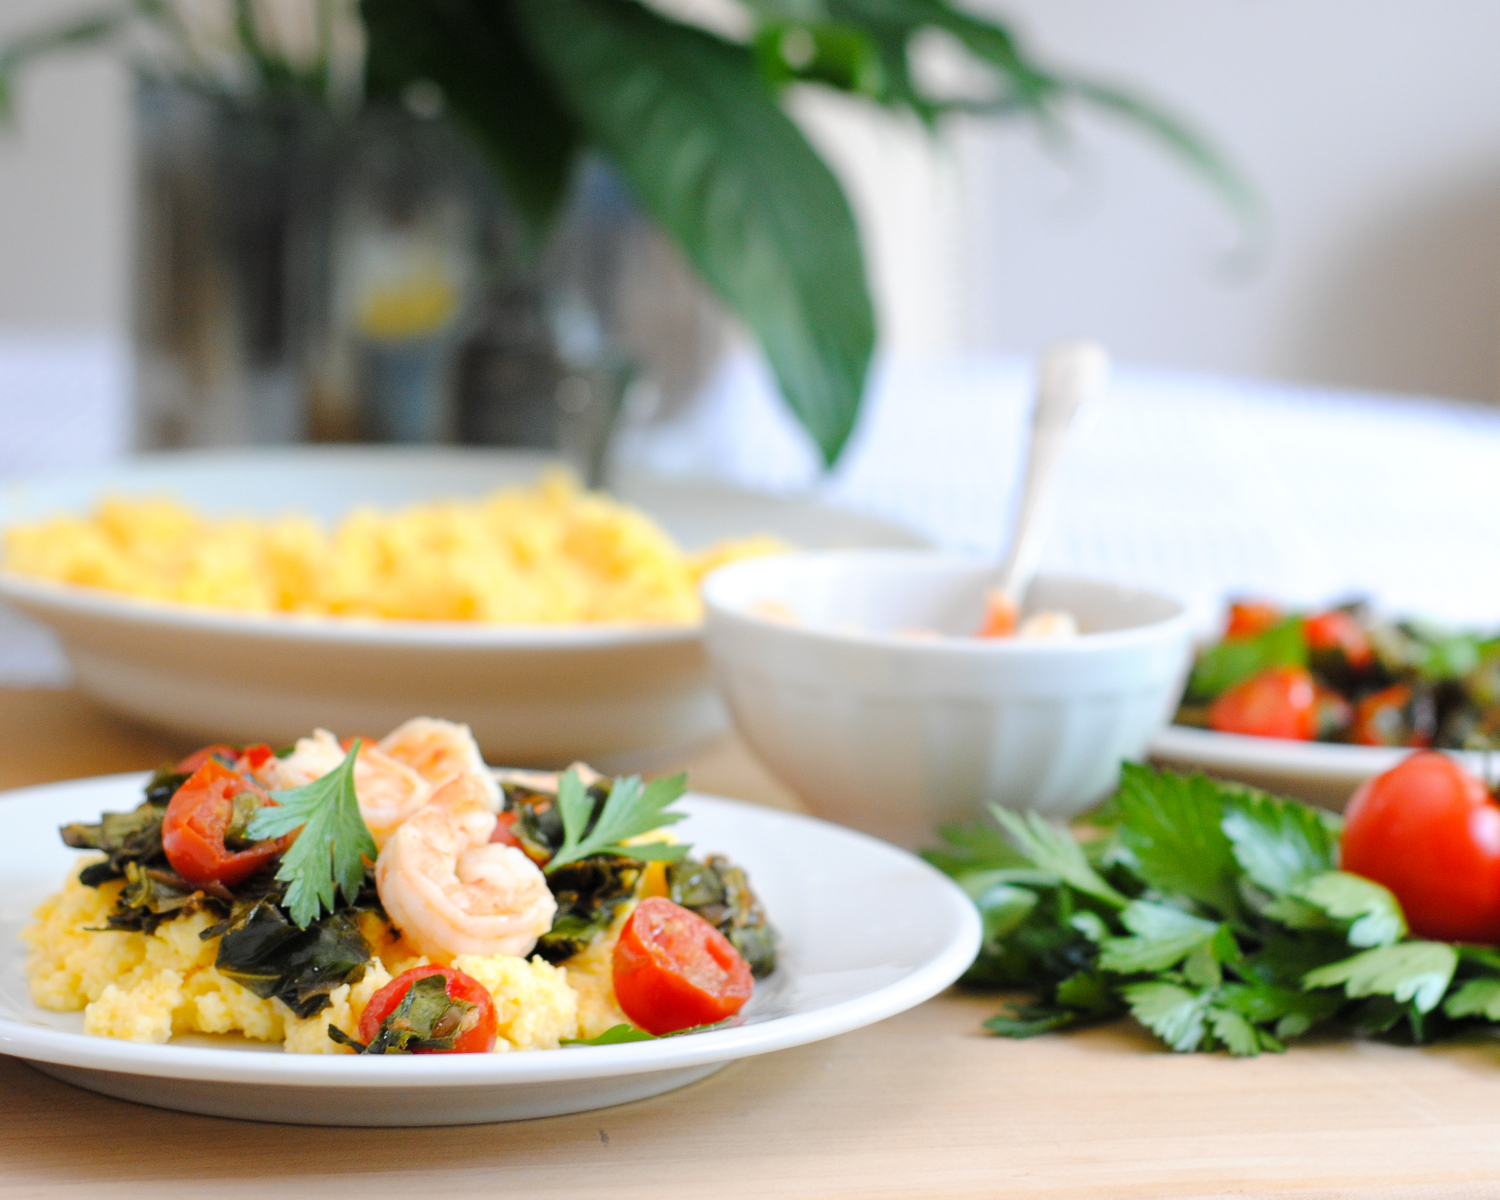 Healthy shrimp and grits recipe with collard greens and tomatoes - super easy and delicious, ready in 30 minutes!